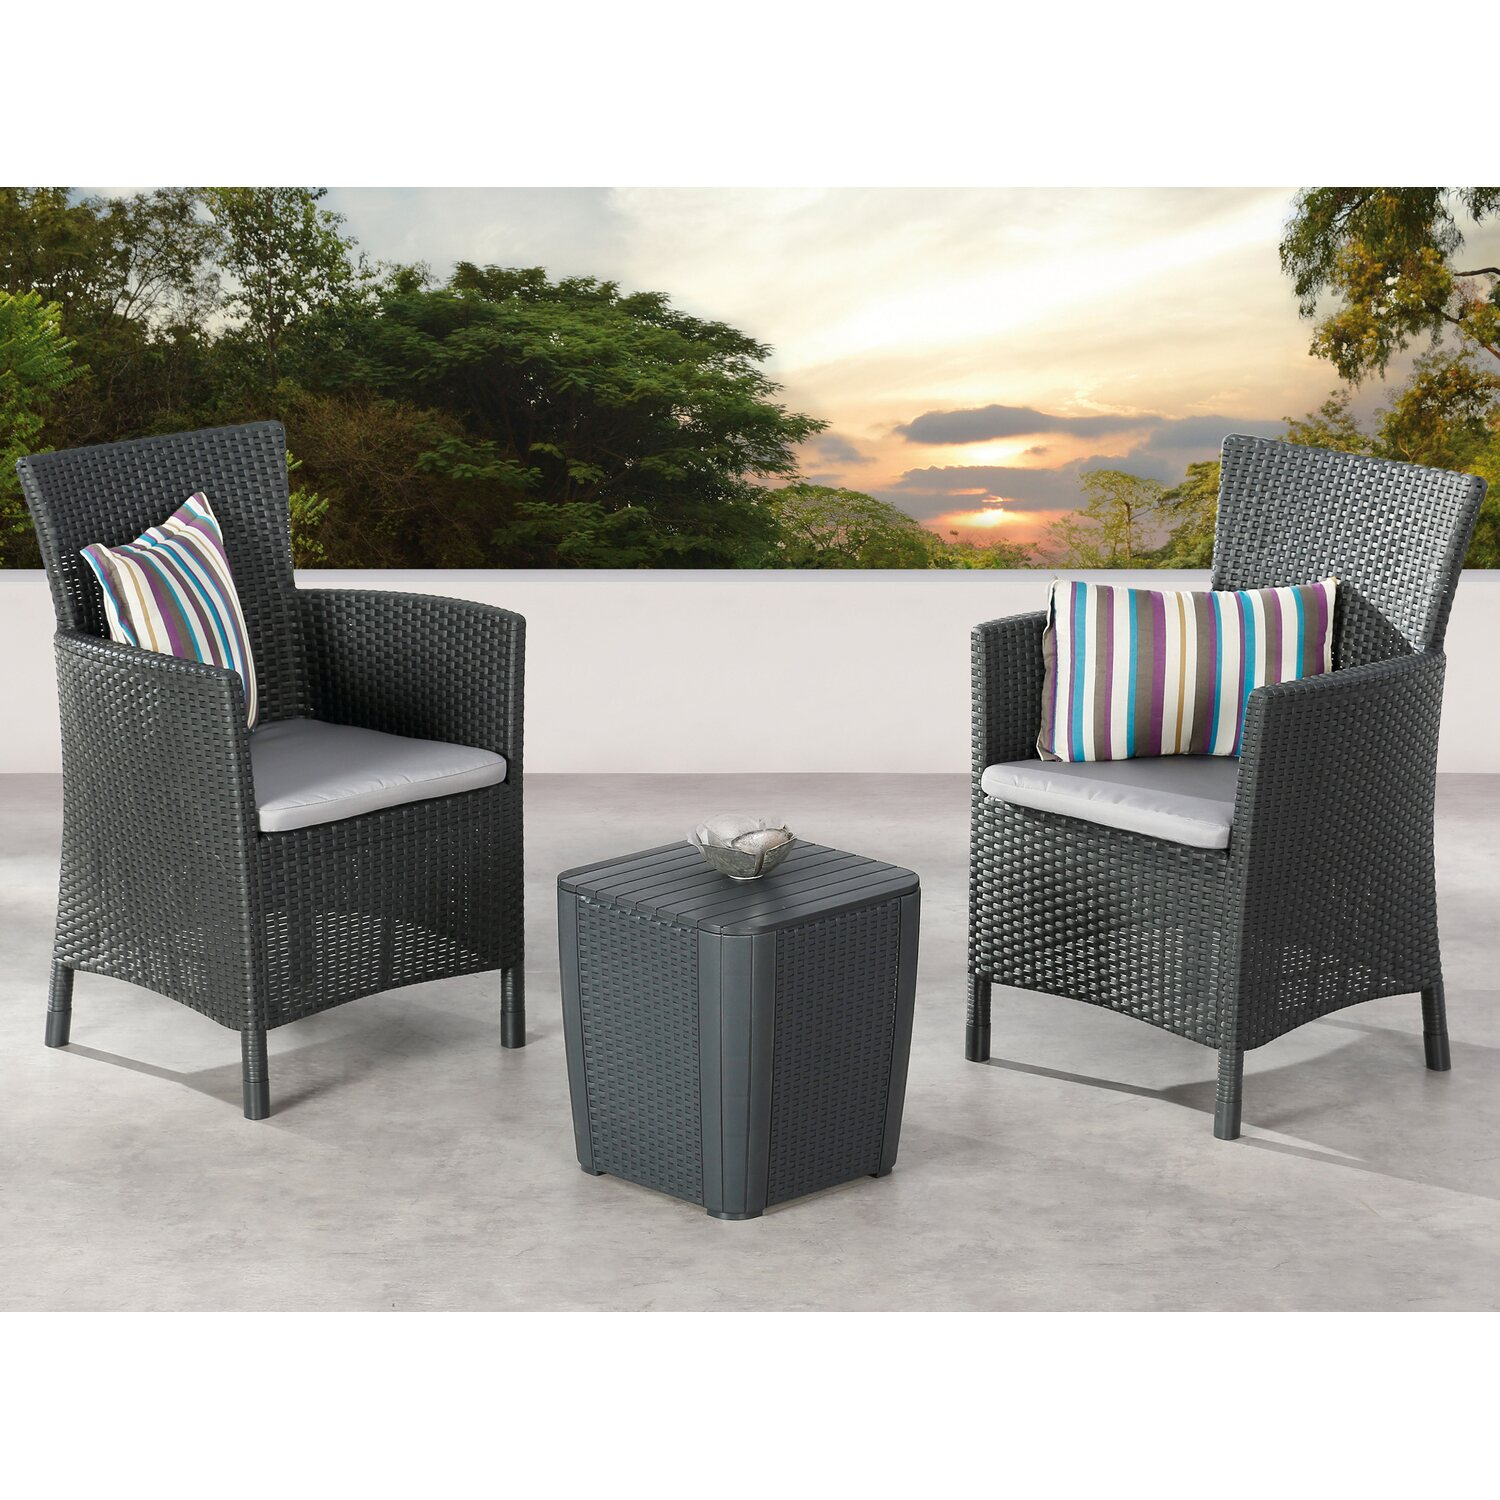 balkon set napoli 3 tlg graphit hellgrau kaufen bei obi. Black Bedroom Furniture Sets. Home Design Ideas